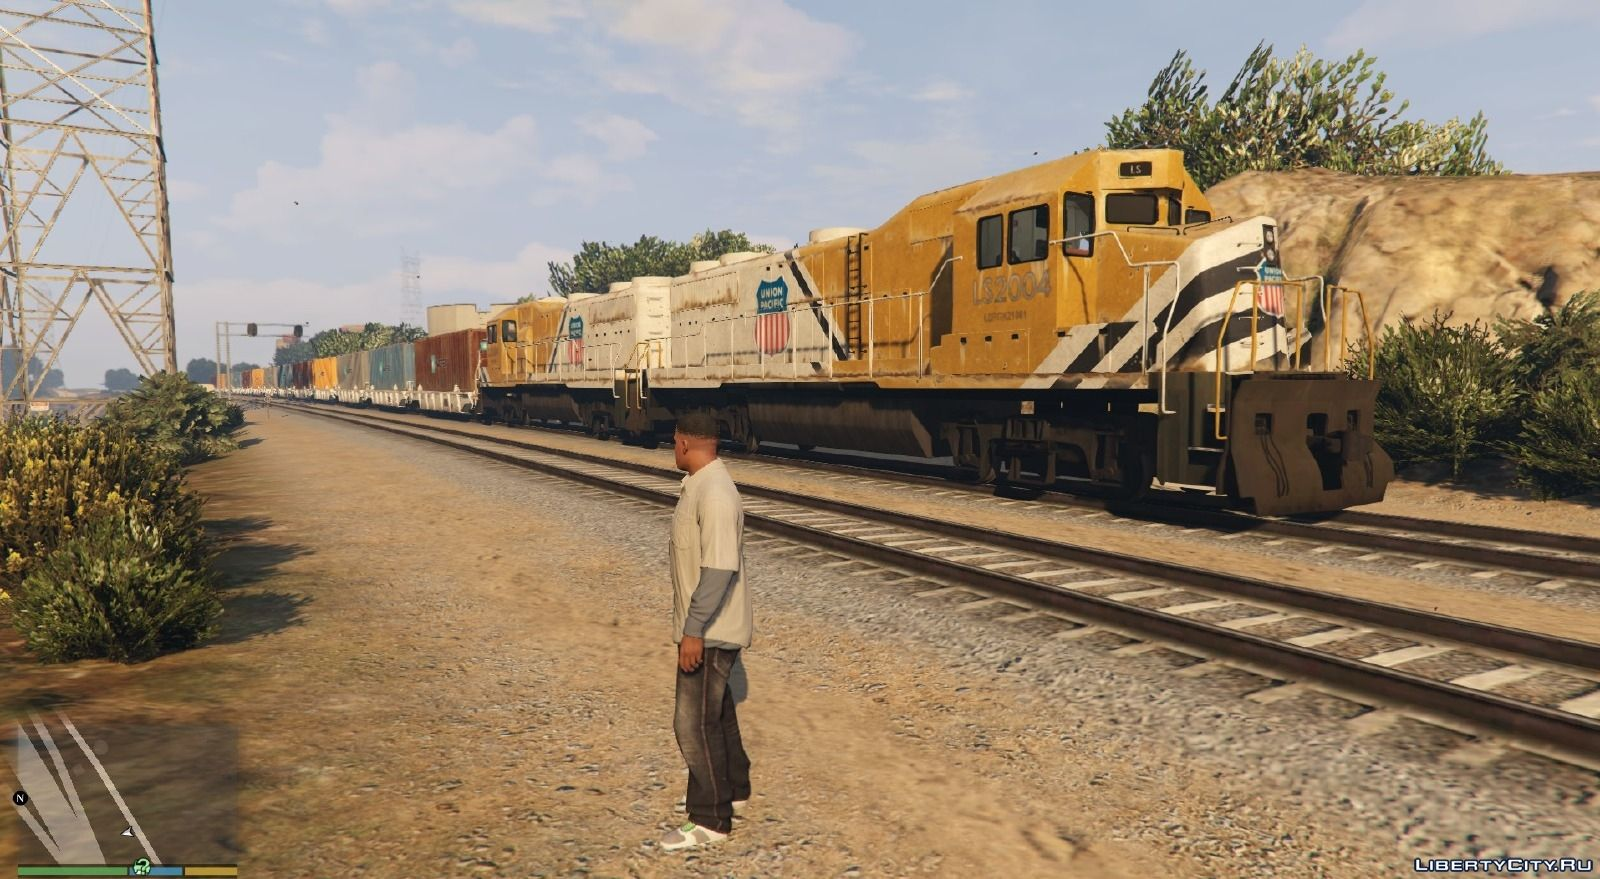 how to ride a train in gta 5